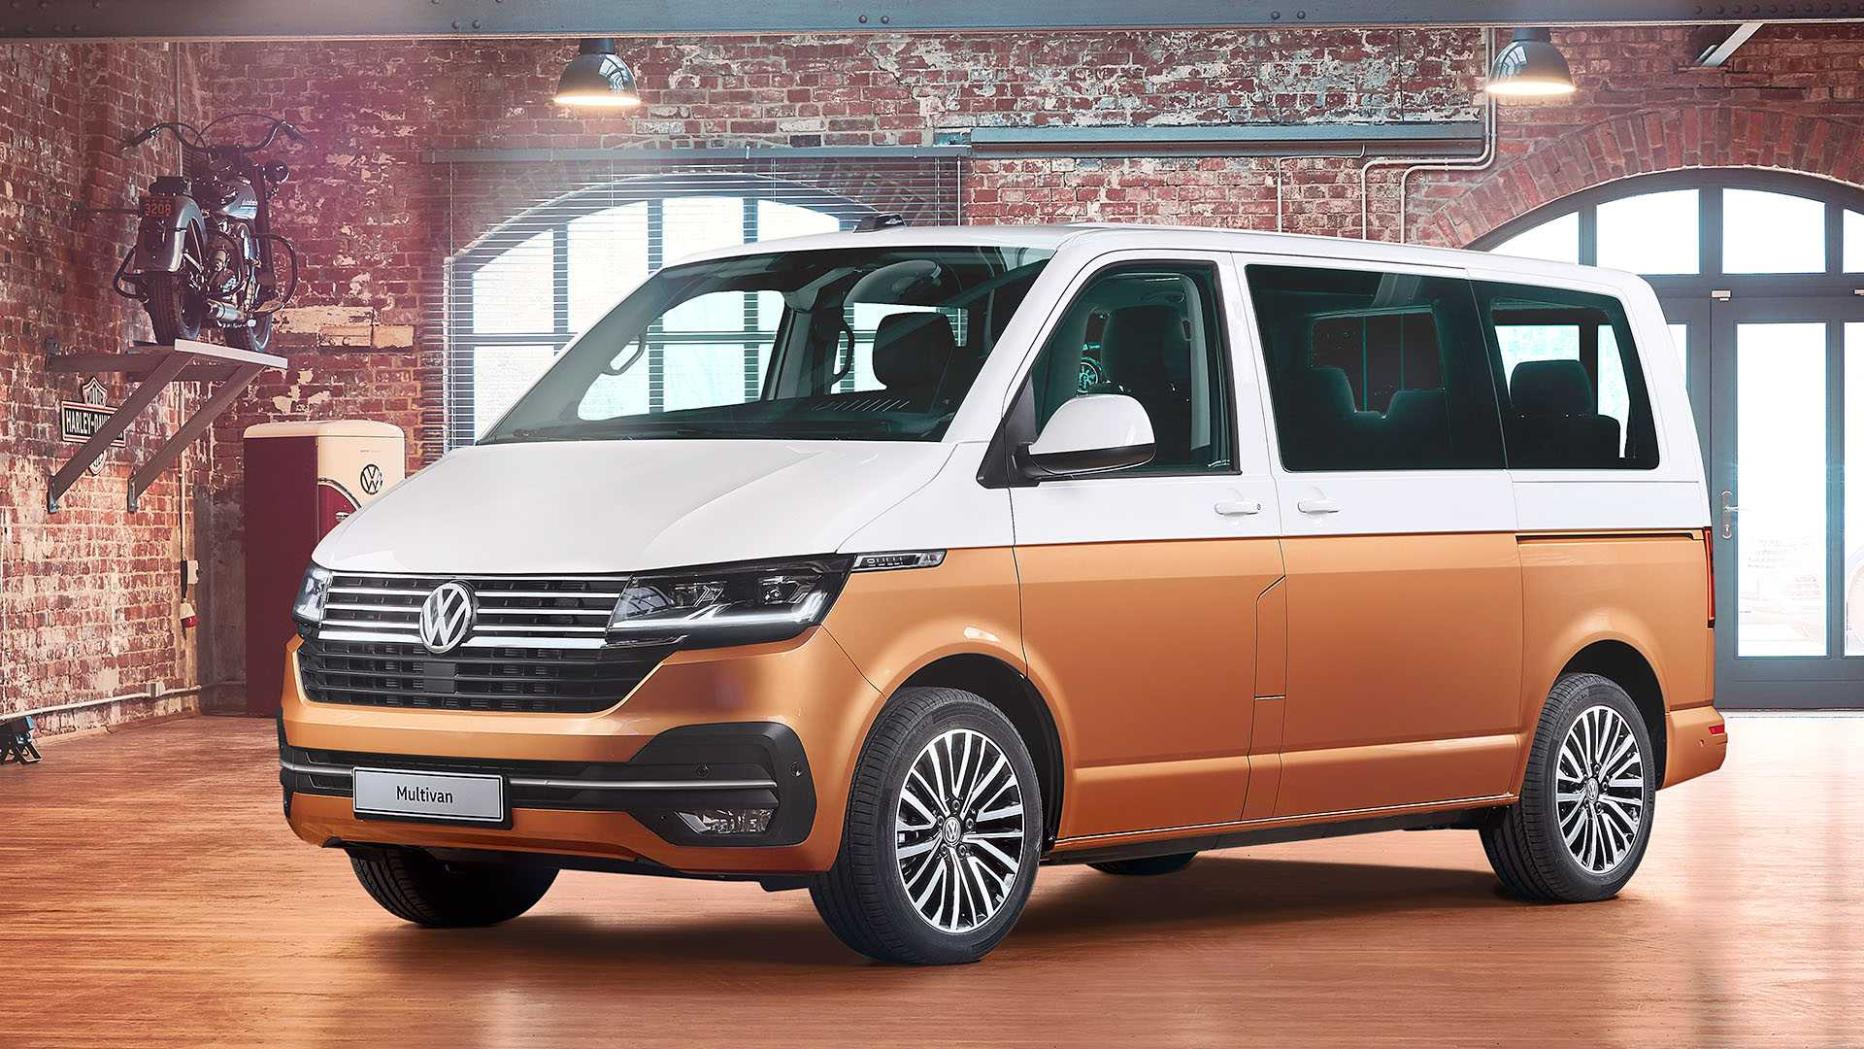 Offiziell: VW T7 kommt 2021 auch als Plug-in-Hybrid | motor.at